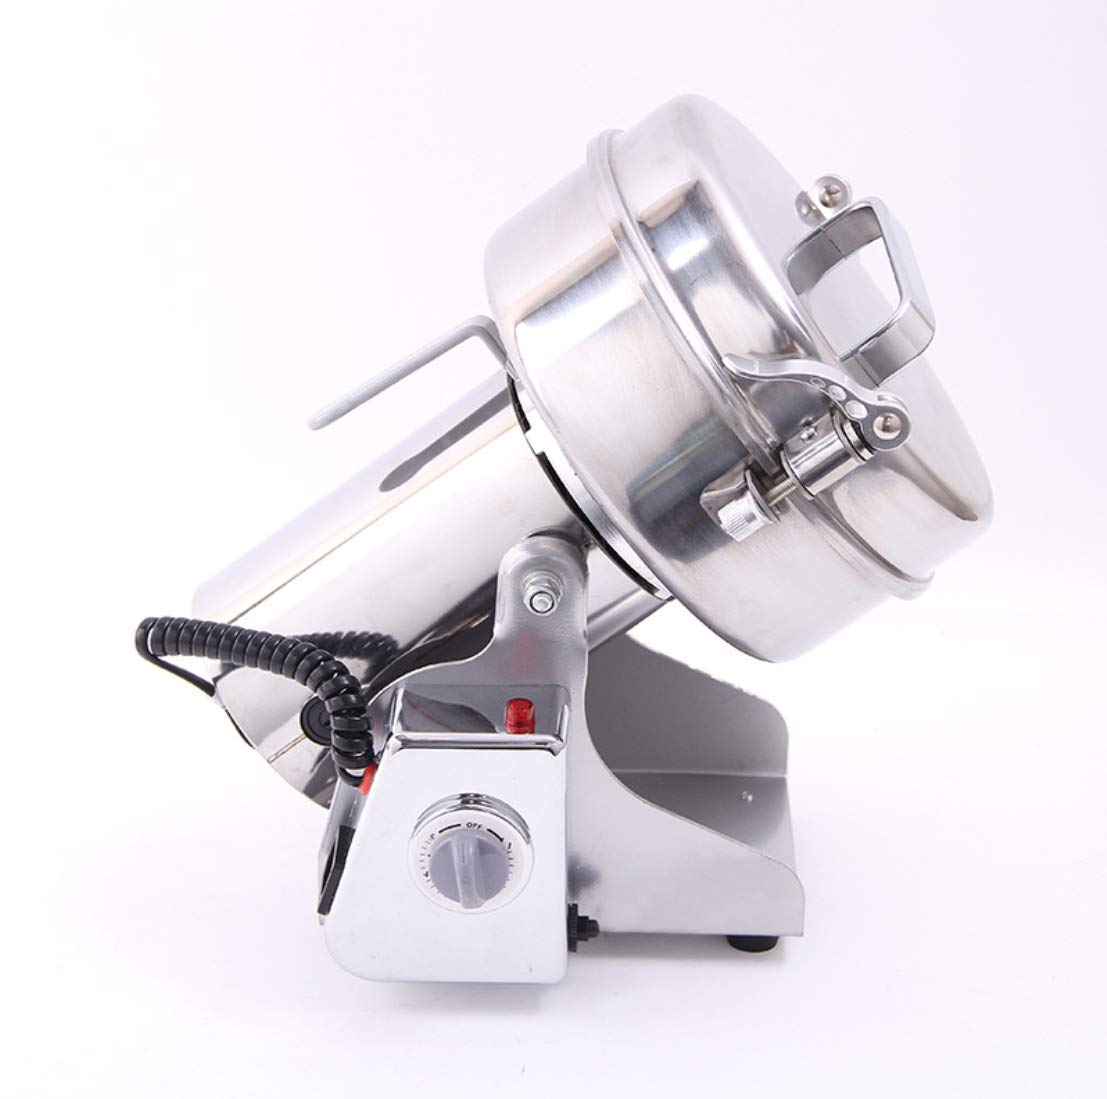 RRH Swing Type Stainless Steel Grain Grinder 750g Powder Machine 2300W Commercial Electric Grain Mill for Pill Hurb Corn Spice Nut and Coffee